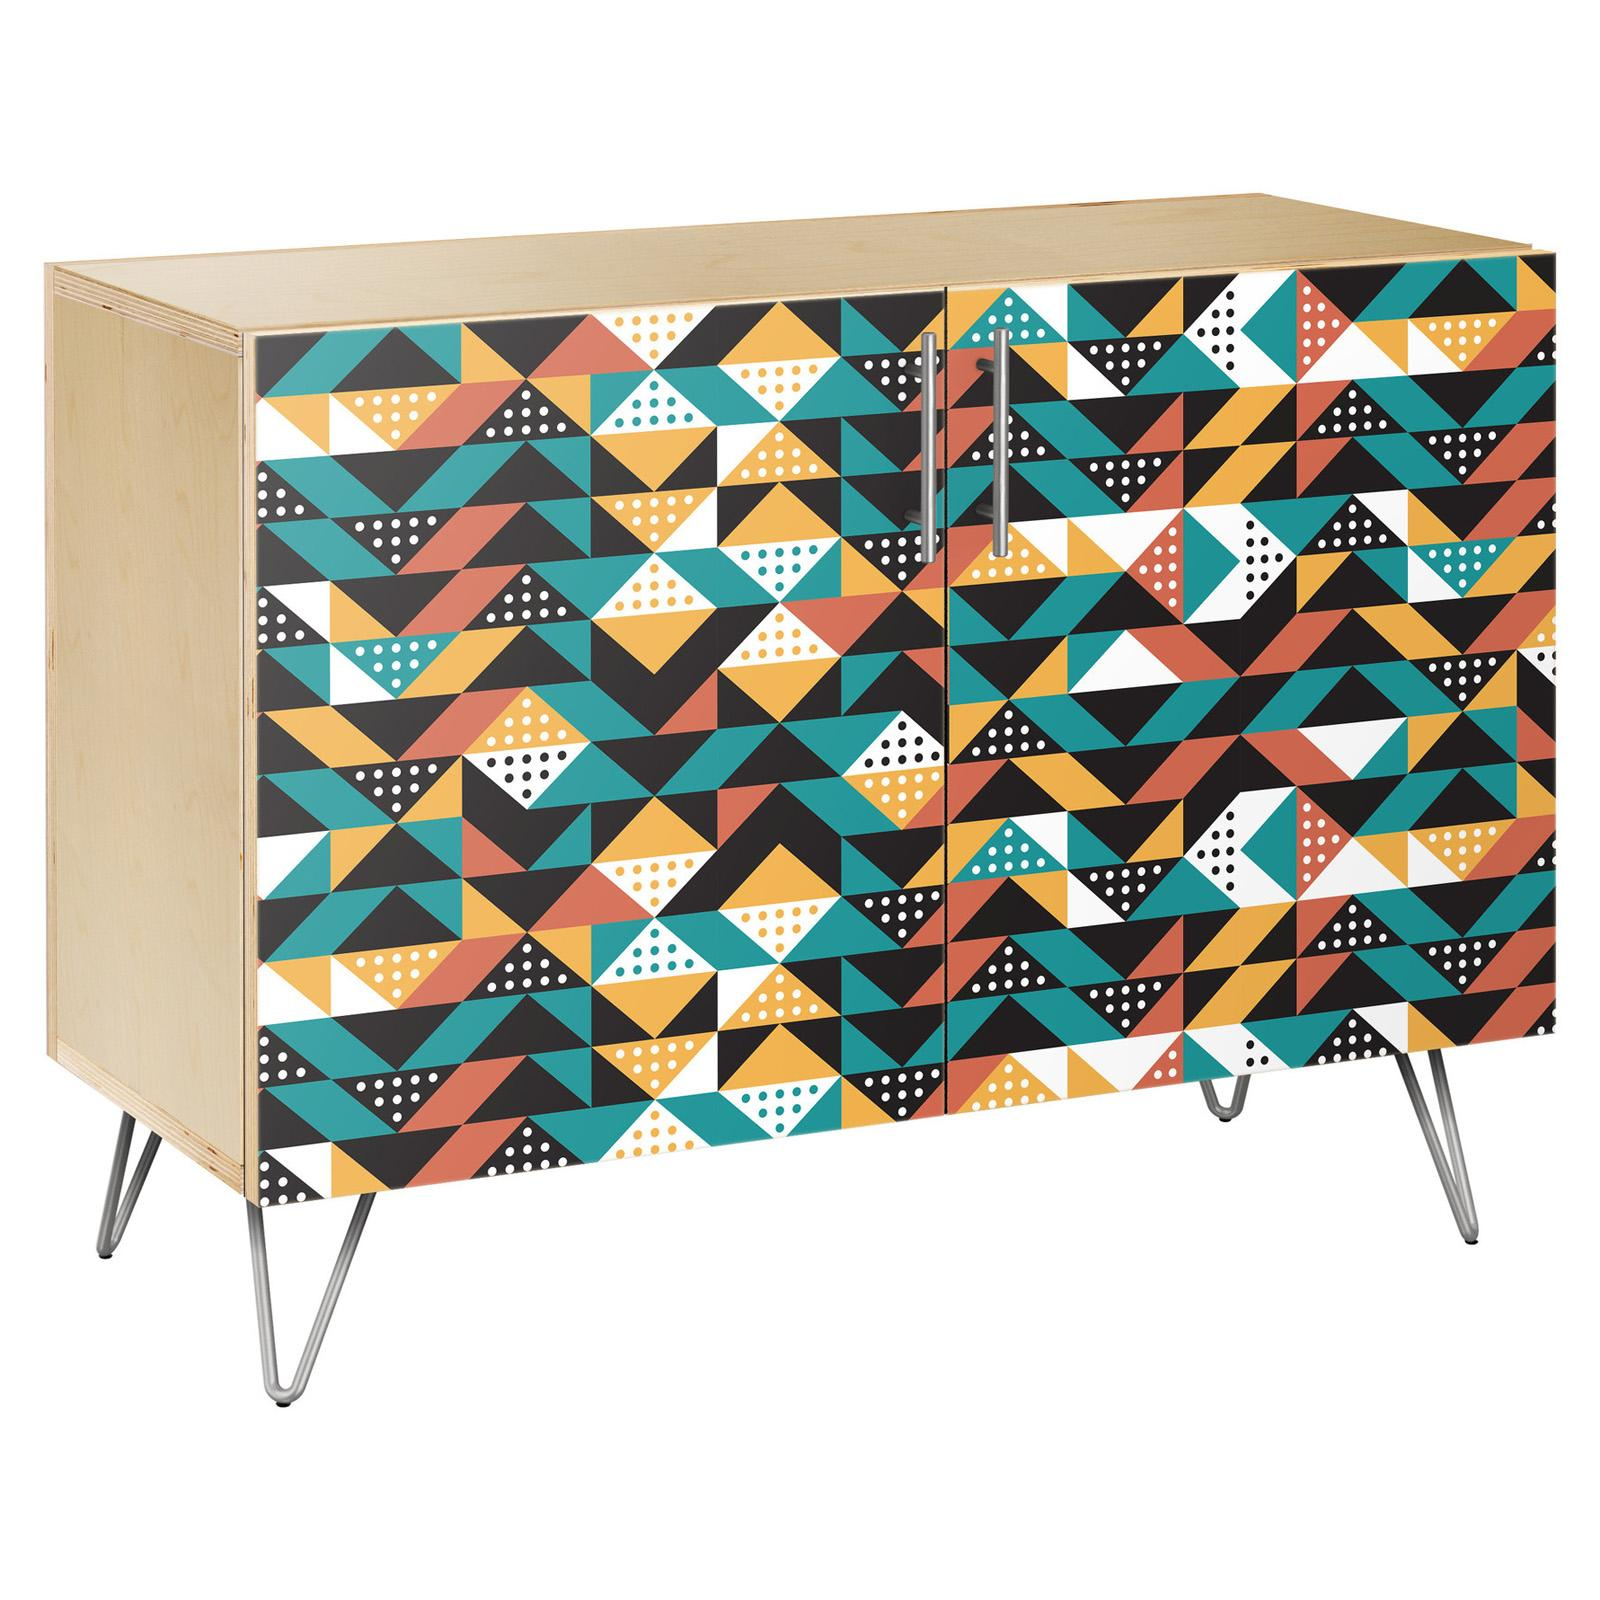 NyeKoncept Retro Disposition Hairpin Credenza - 13001725